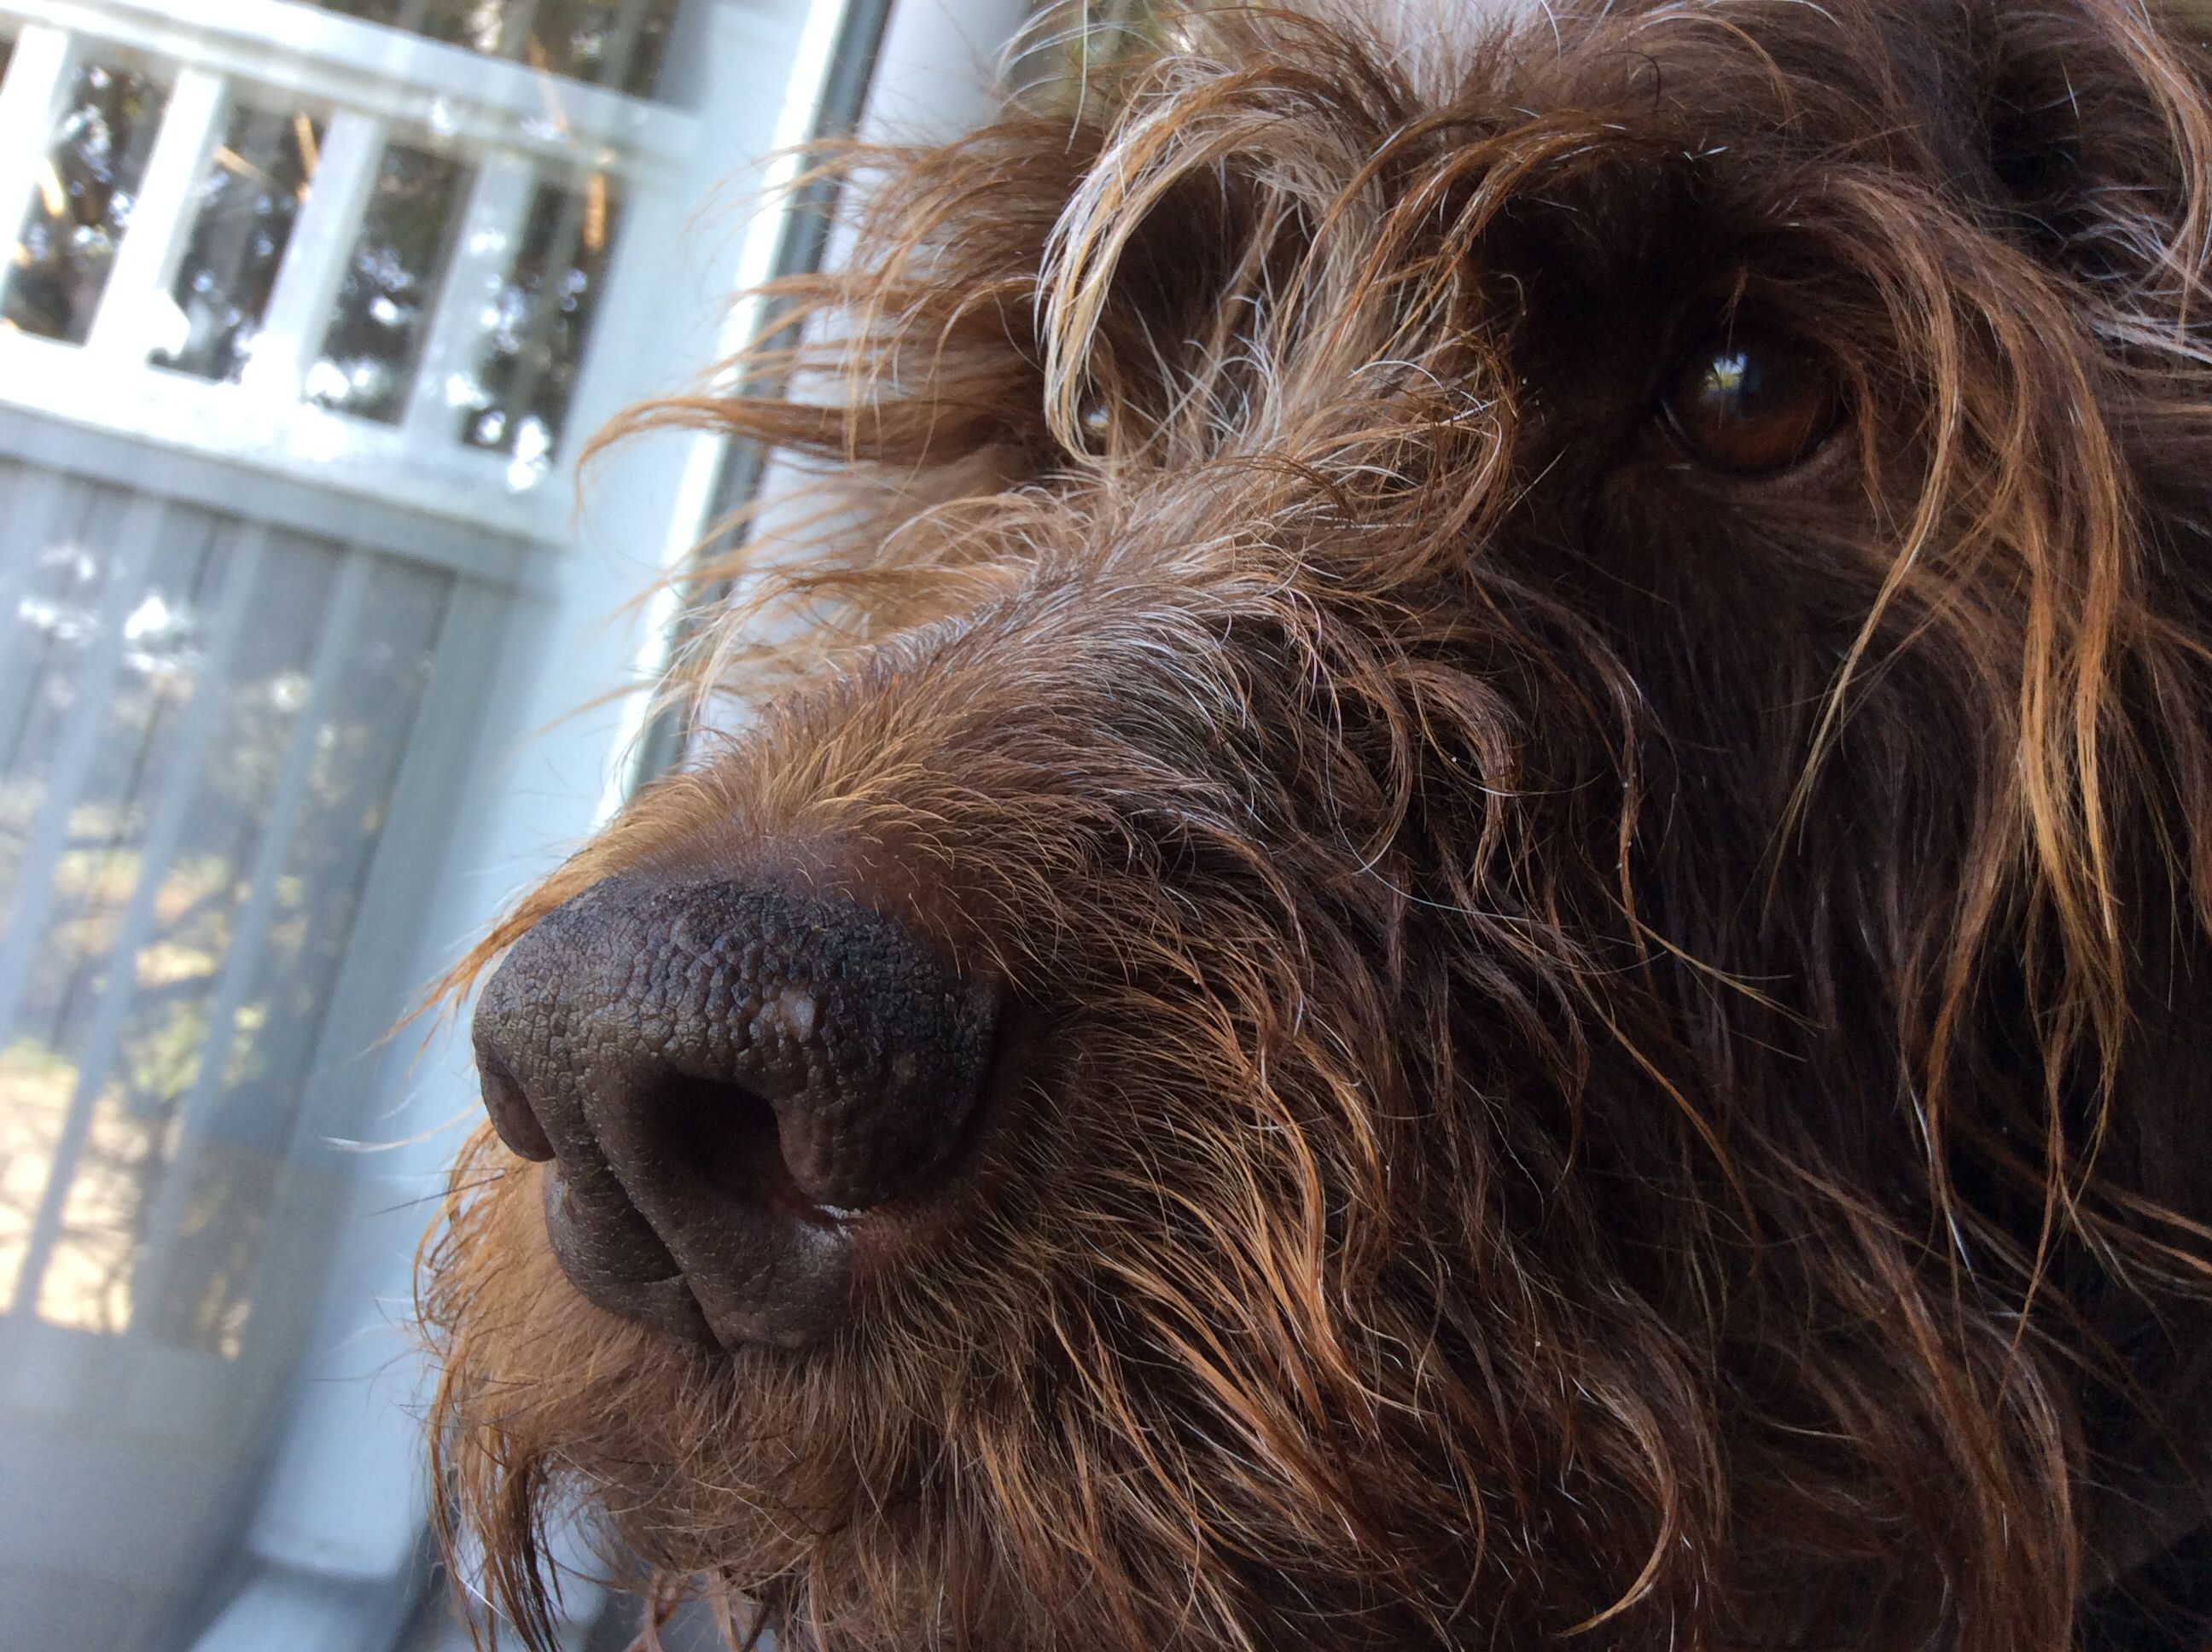 Hugo, my Wirehaired Pointing Griffon